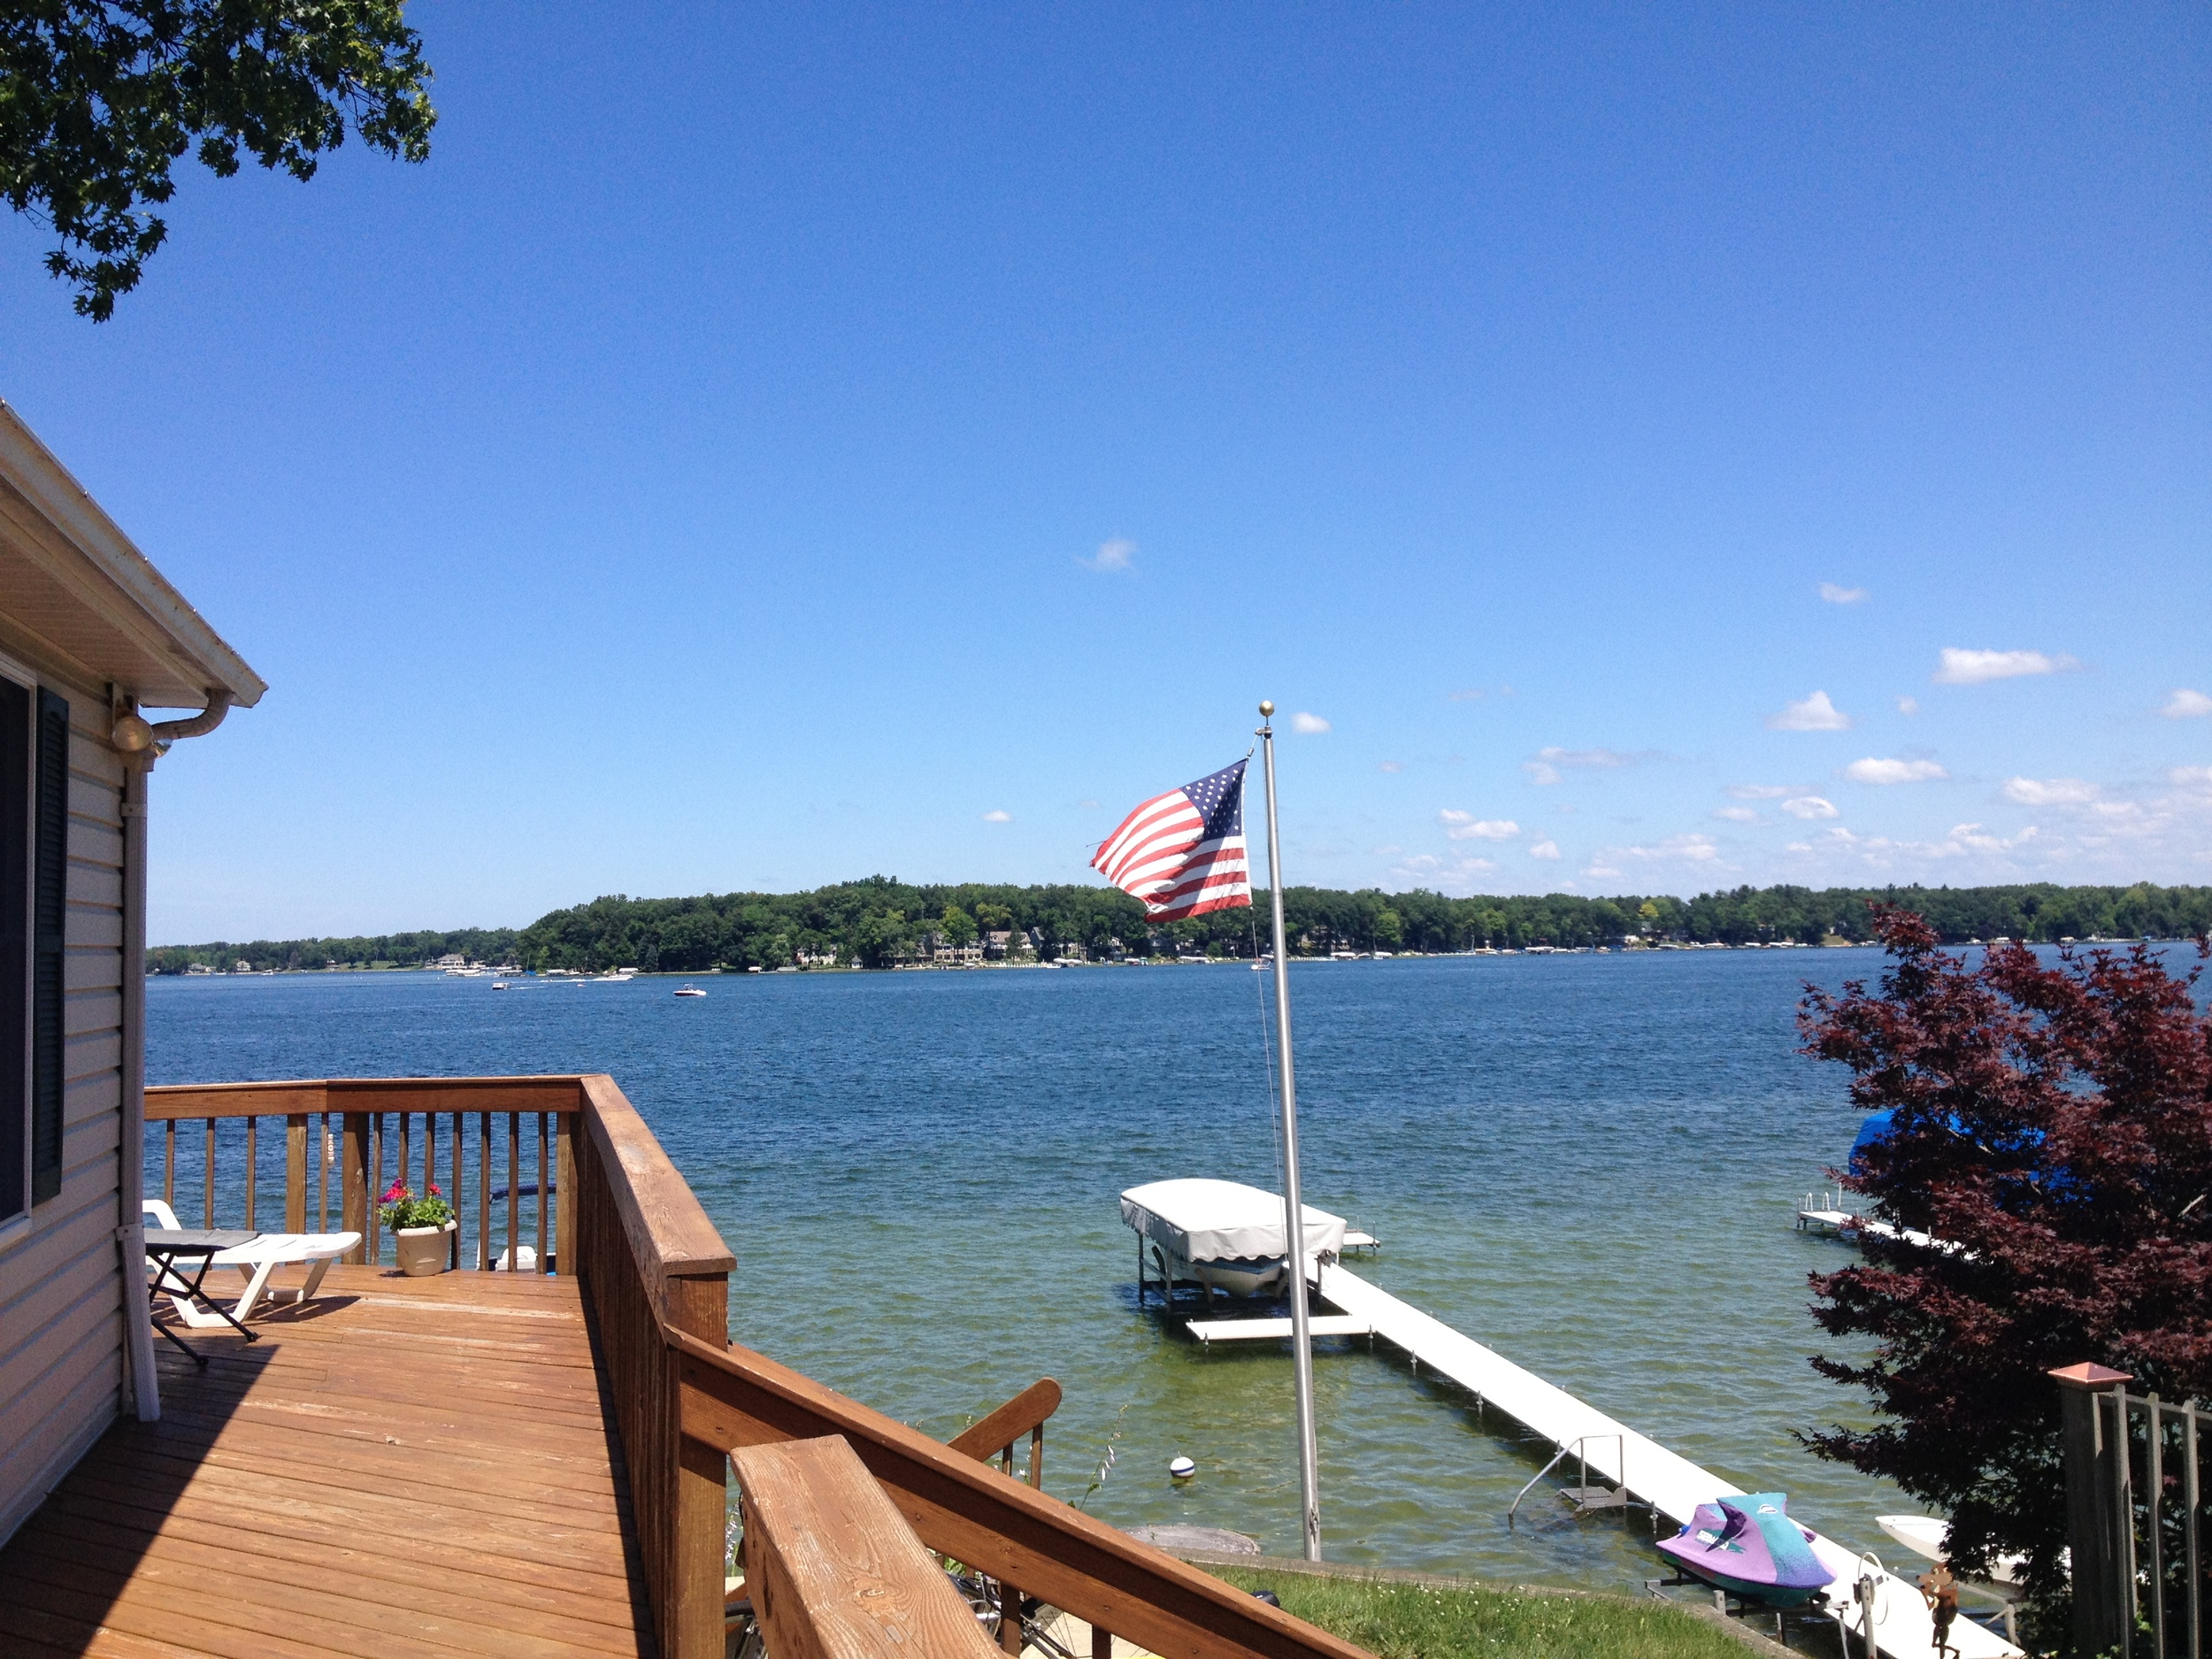 Last Day at The Lake, sad to leave.